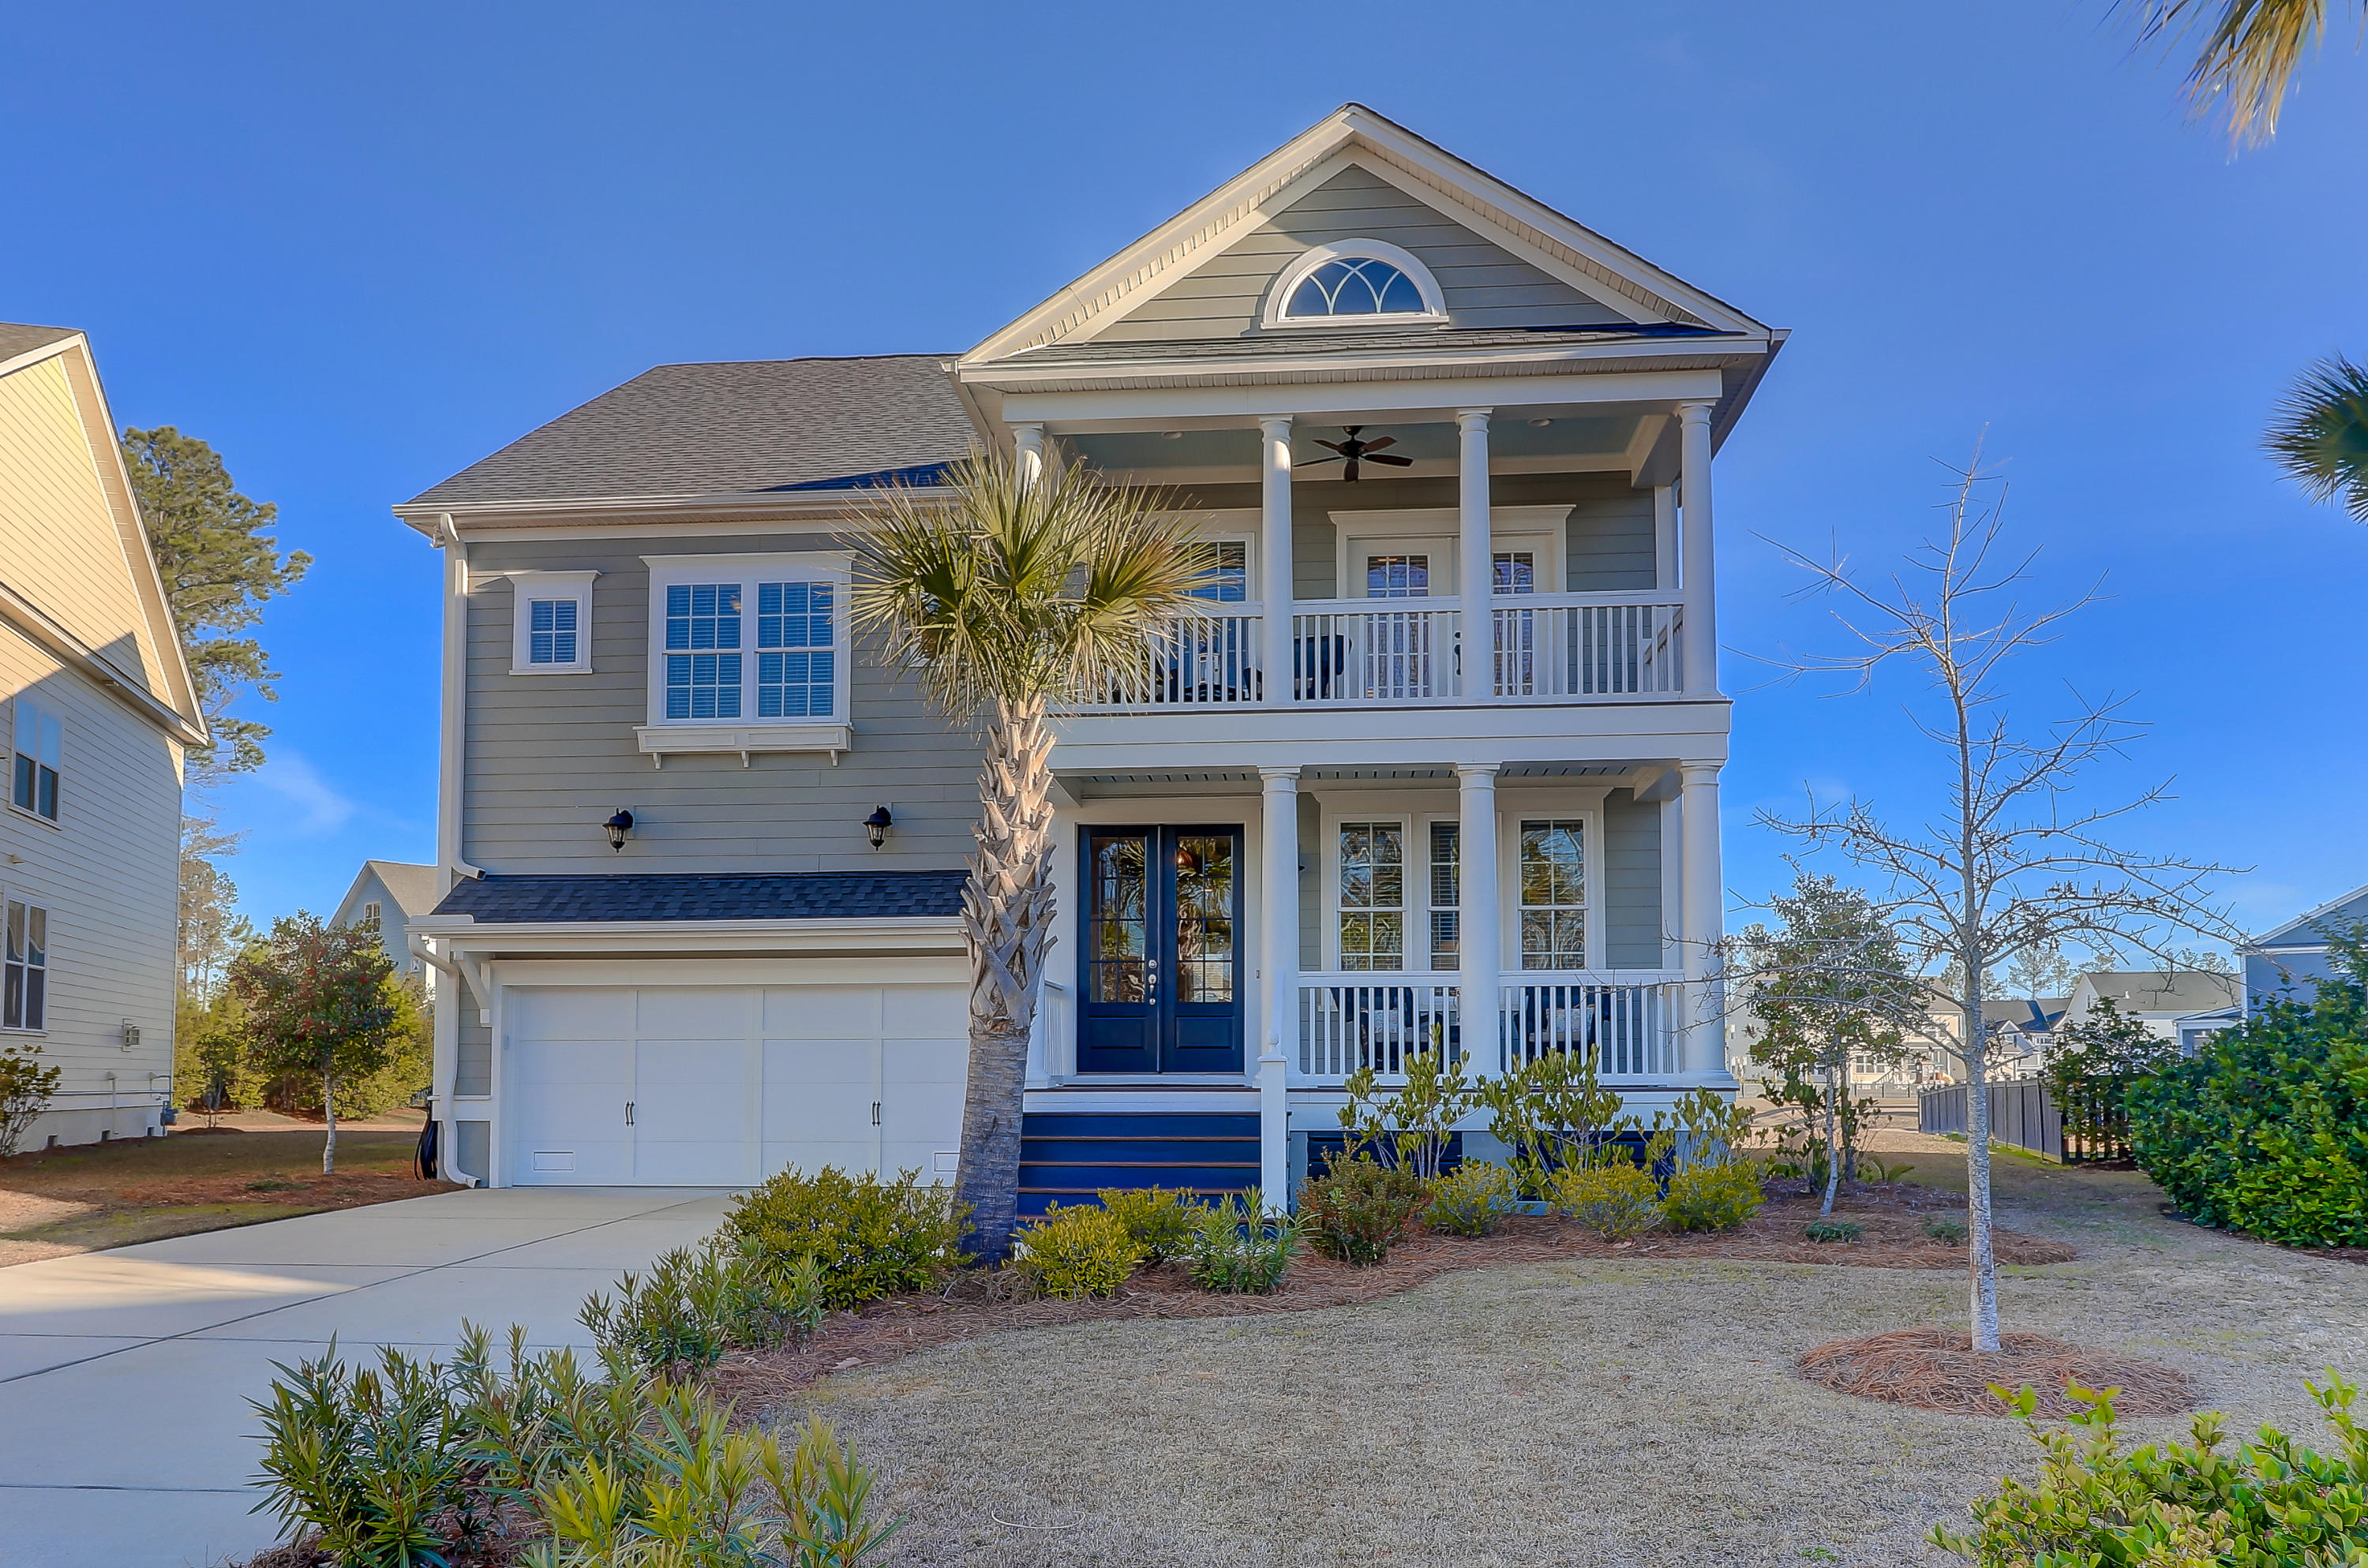 Dunes West Homes For Sale - 1424 Trip Line, Mount Pleasant, SC - 21